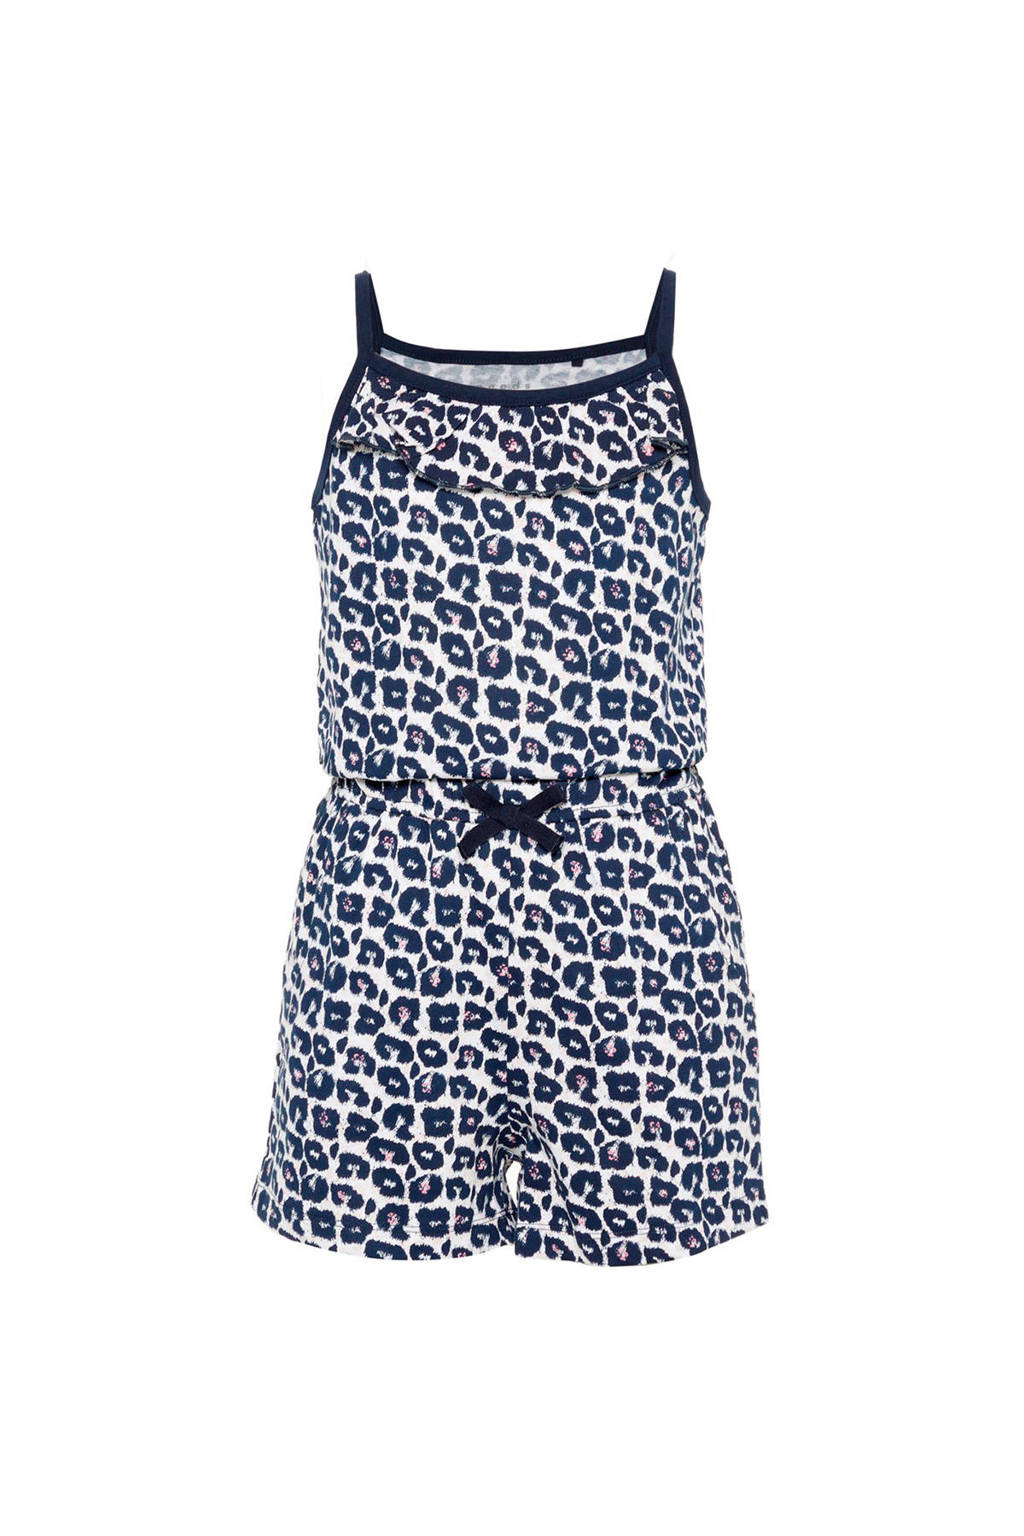 name it jumpsuit met all over print donkerblauw/wit, Donkerblauw/wit